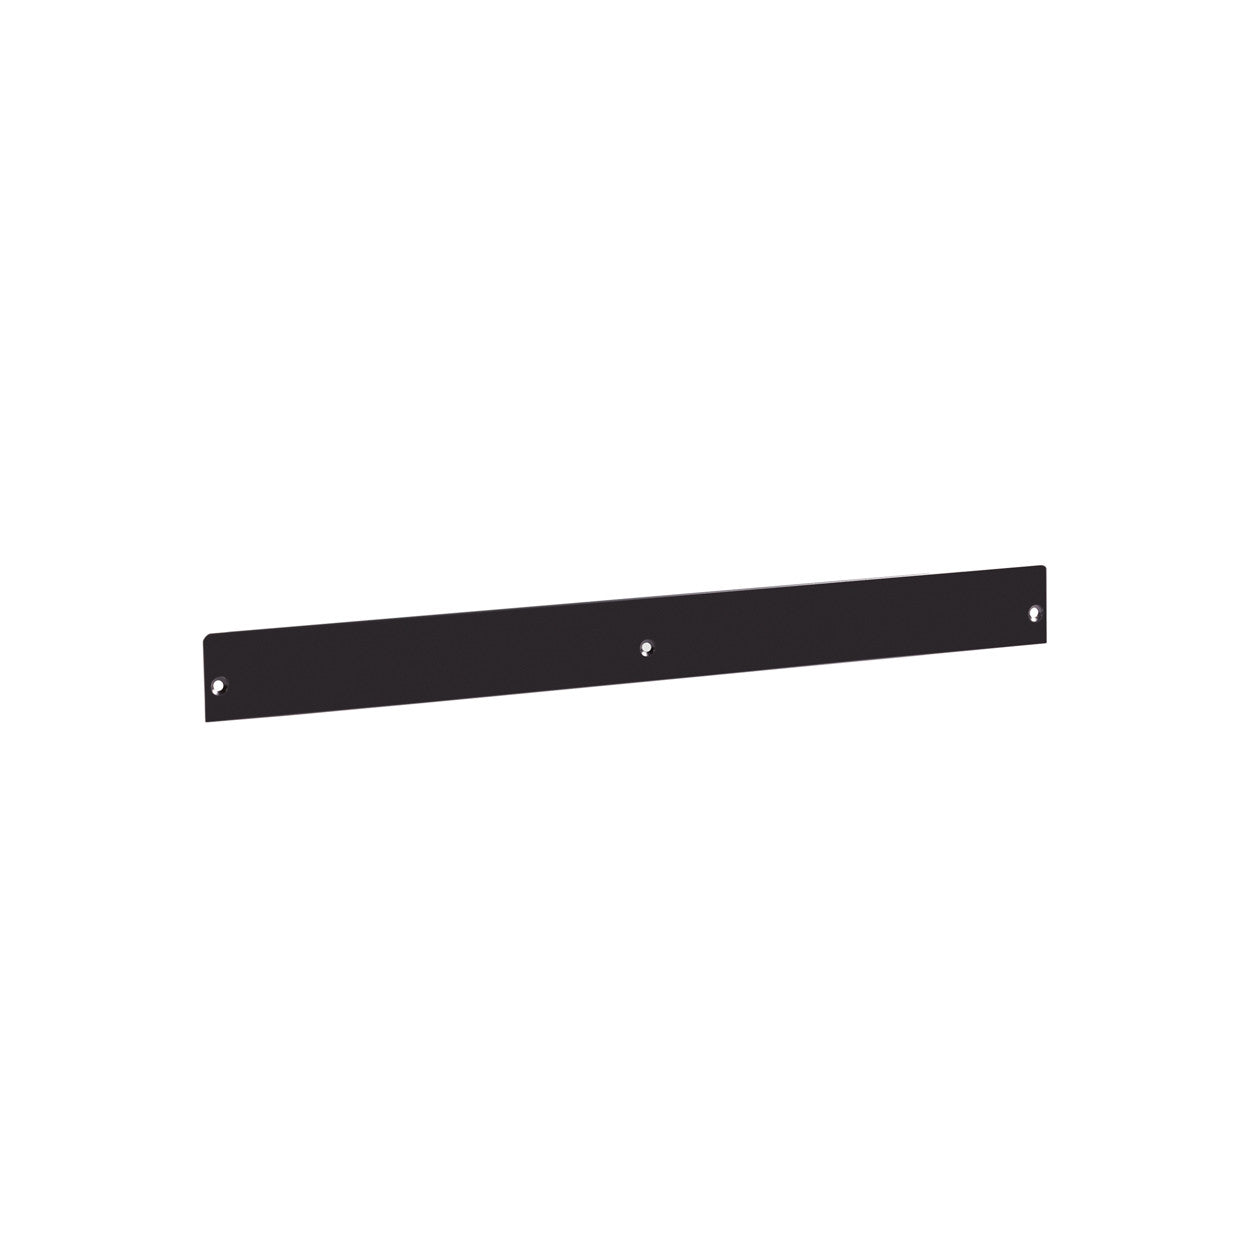 Maxe Shelf Lip Will Fit Front Or Back Of Shelf 593.5 L X 52 H X 2.5Mm Thick